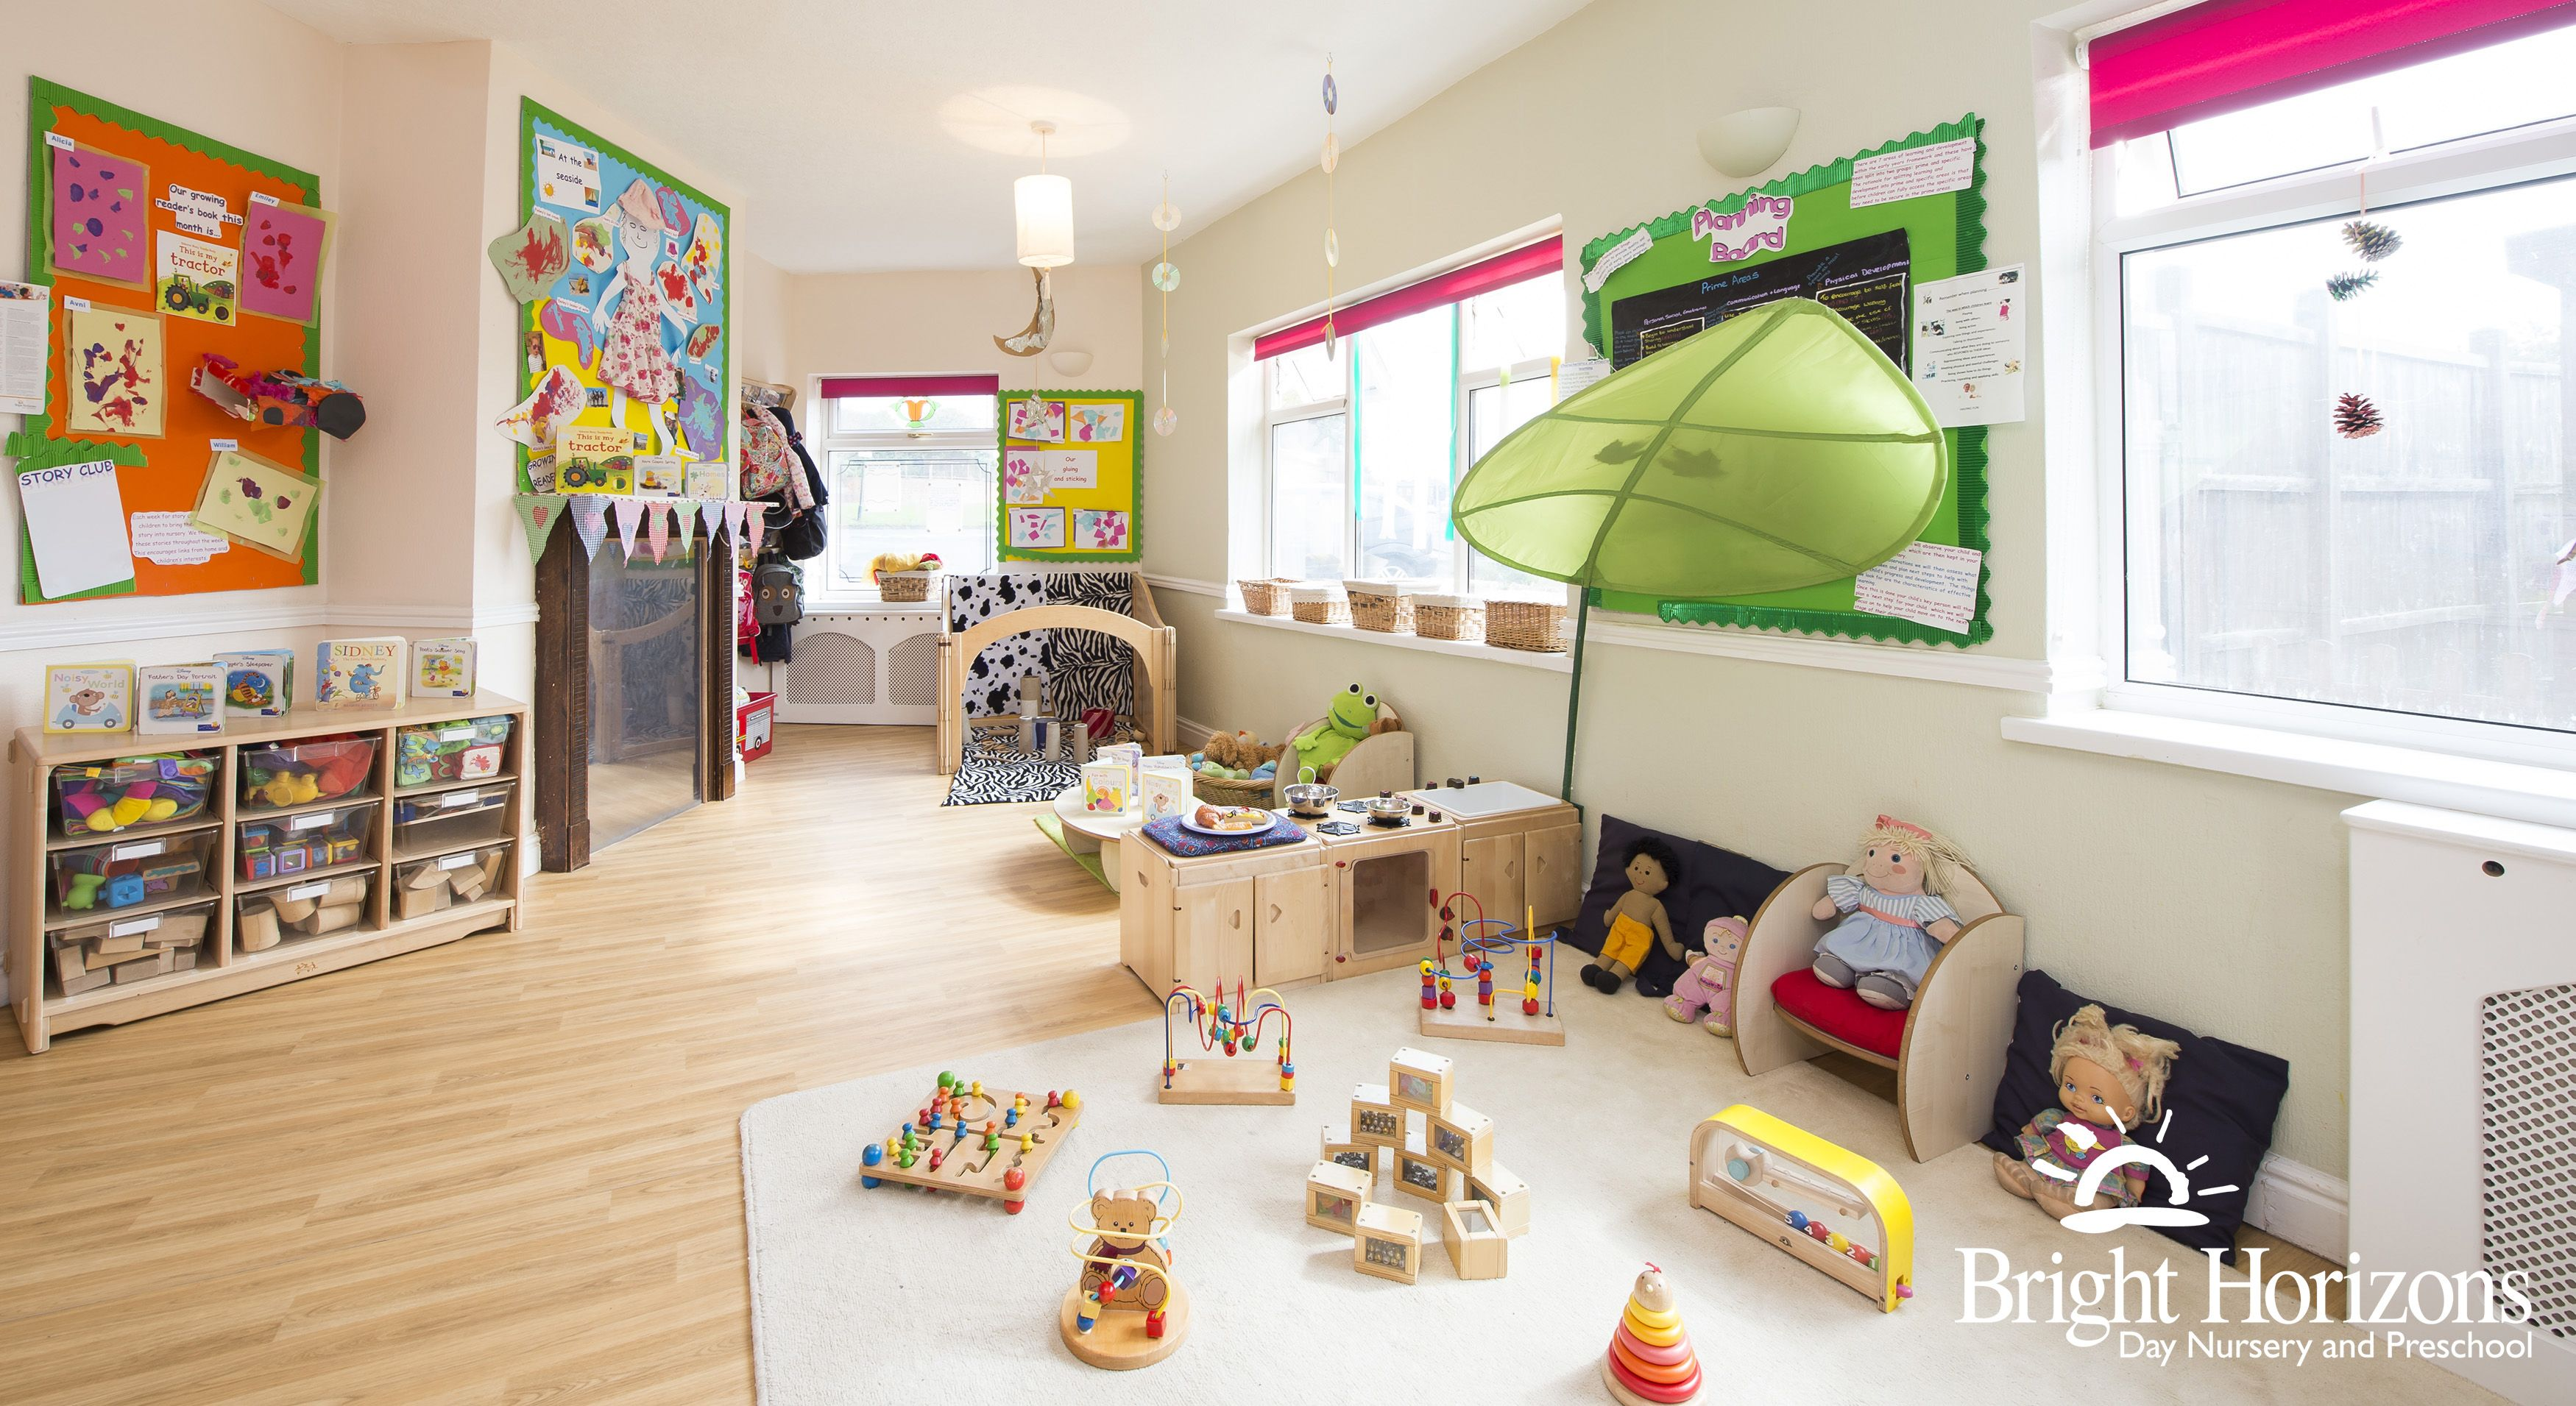 Court Oak Nursery And Preschool In Birmingham Offers A